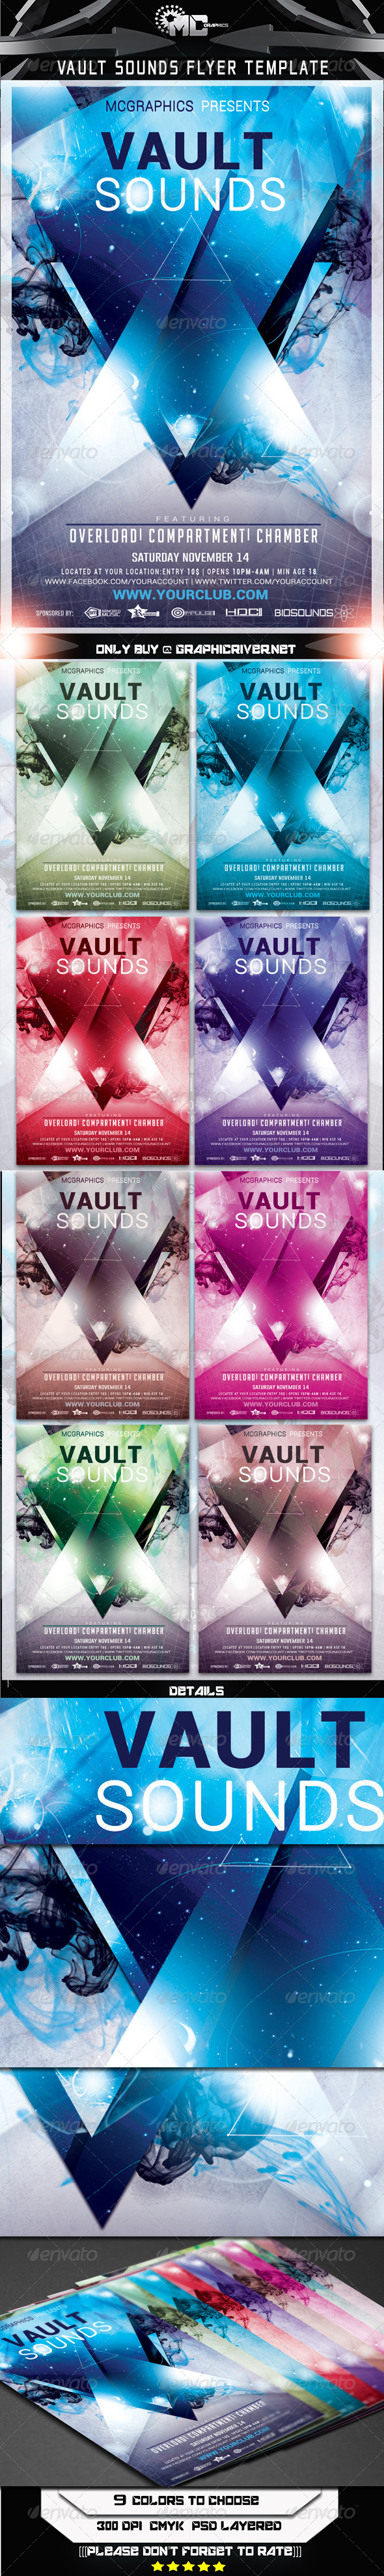 GraphicRiver Vault Sounds Flyer Template 7192957